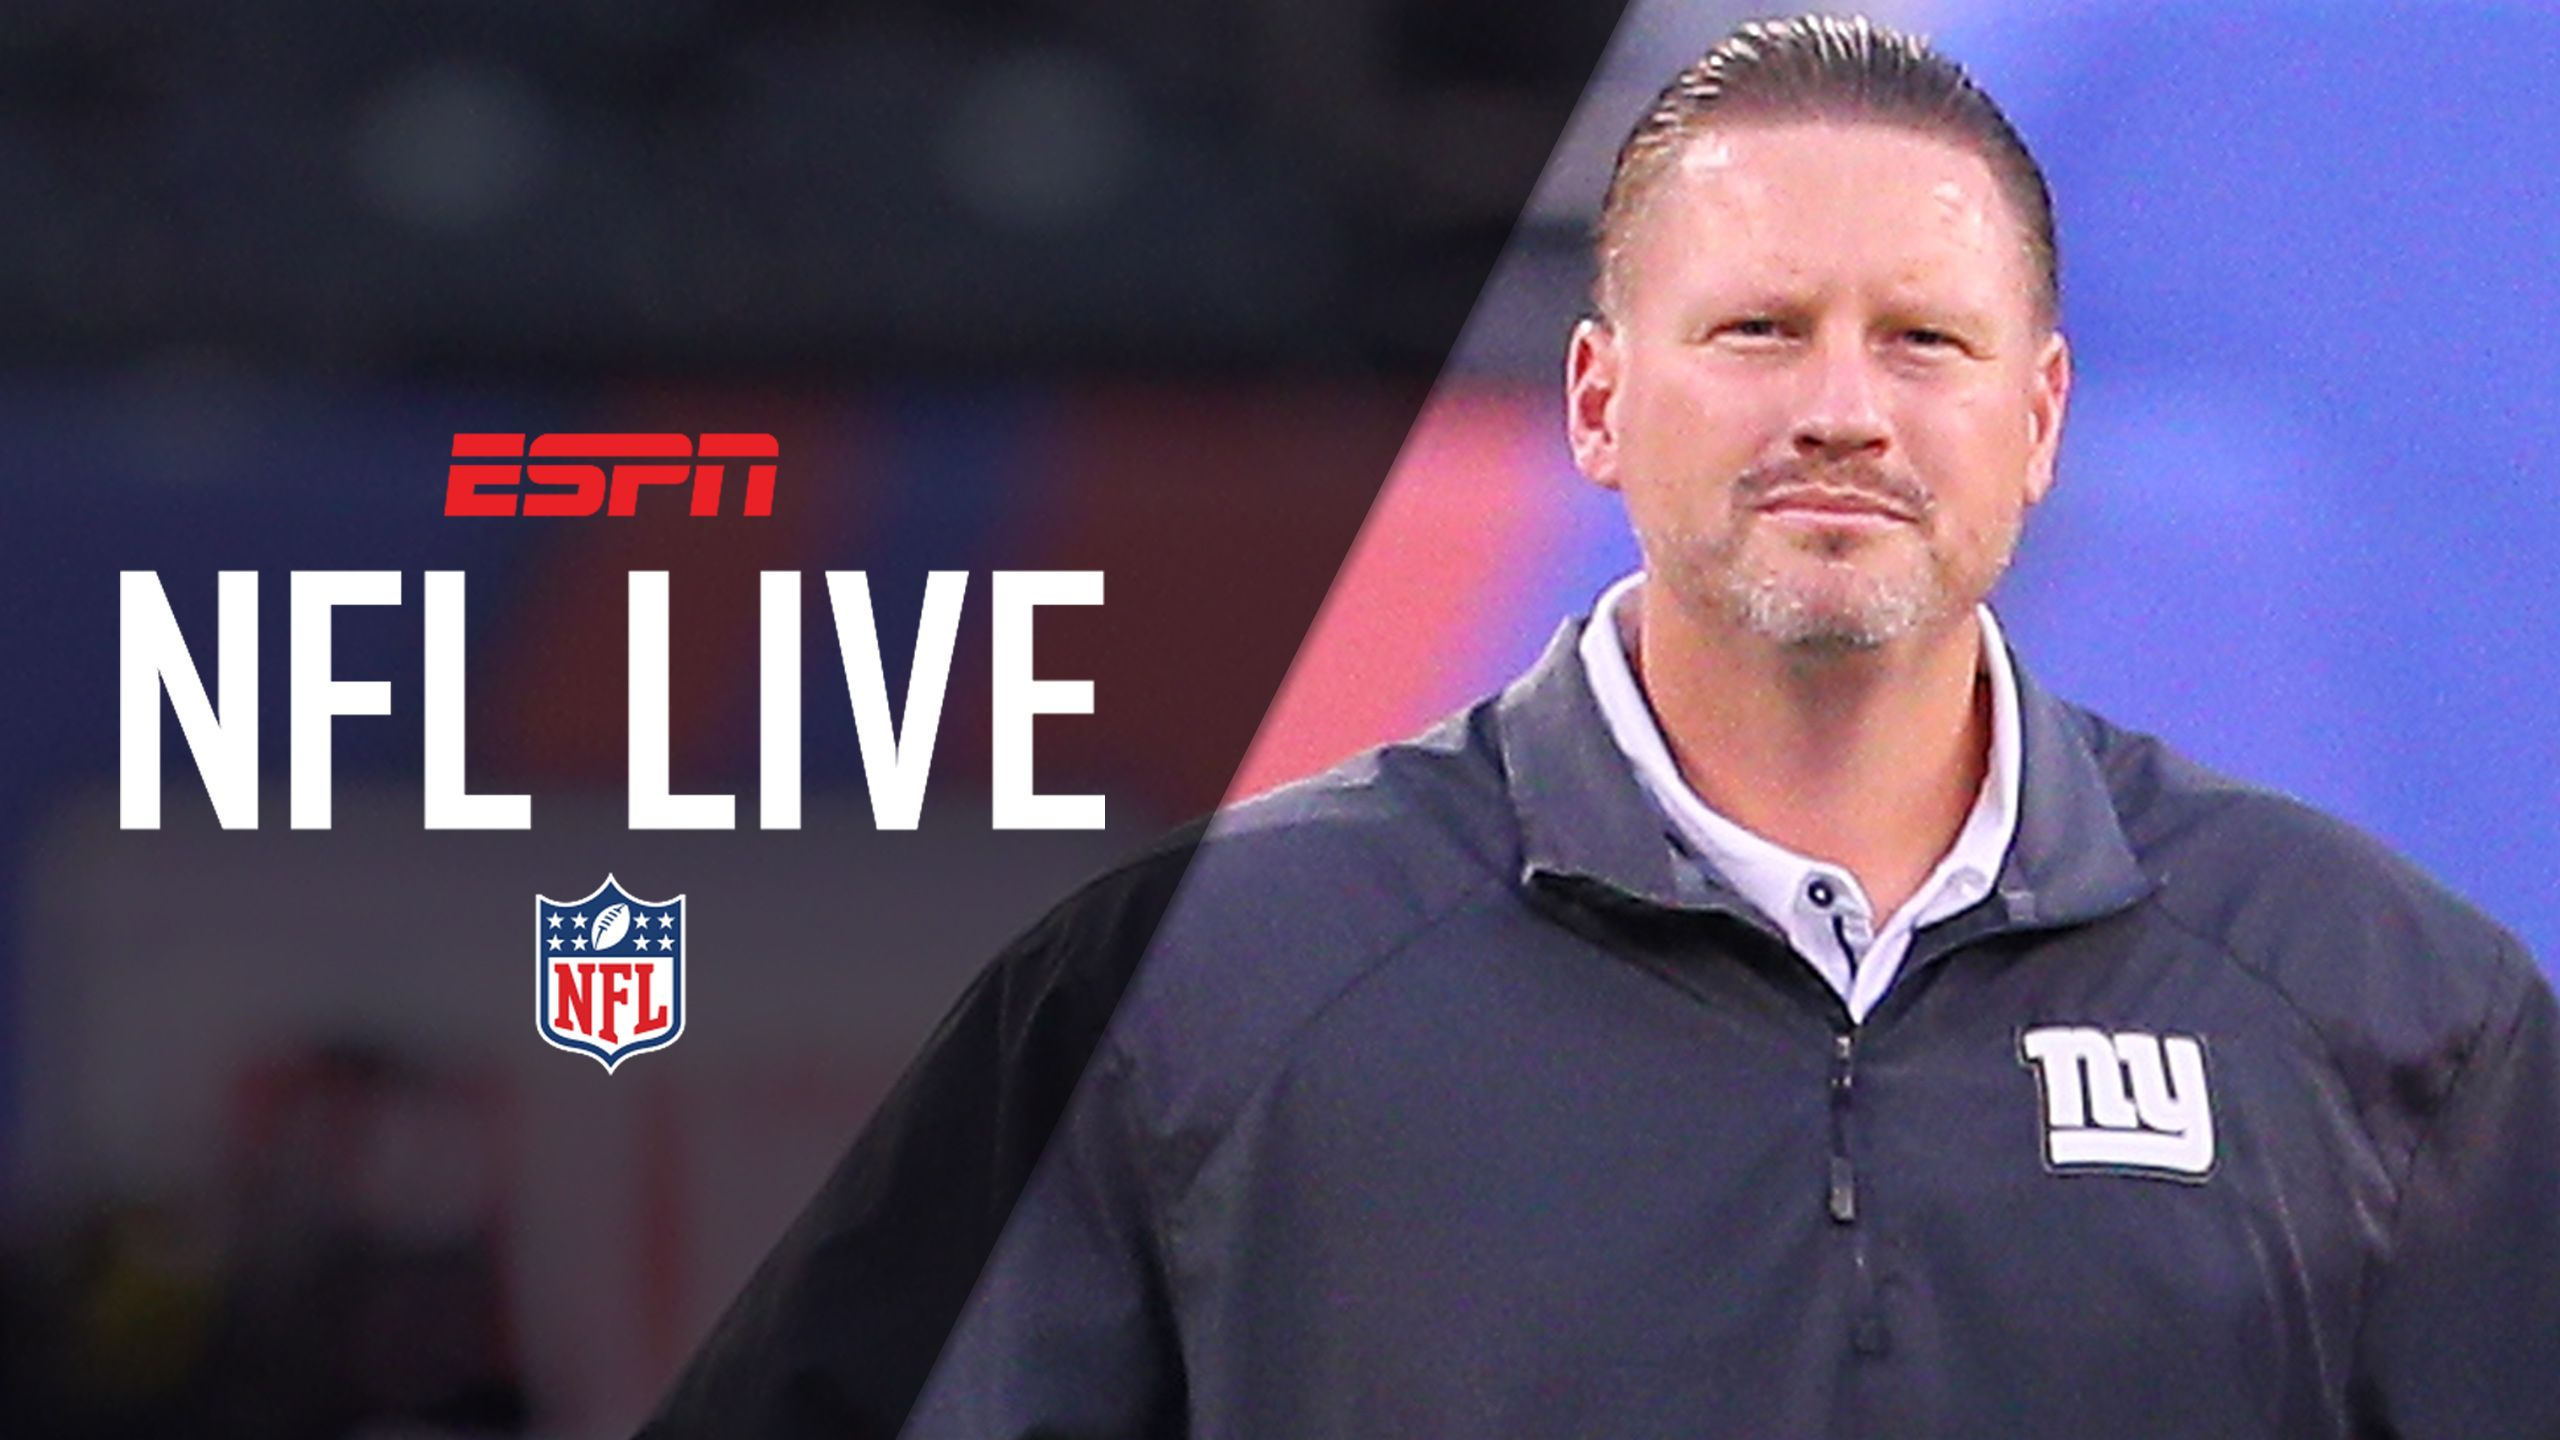 NFL Live presented by Papa John's